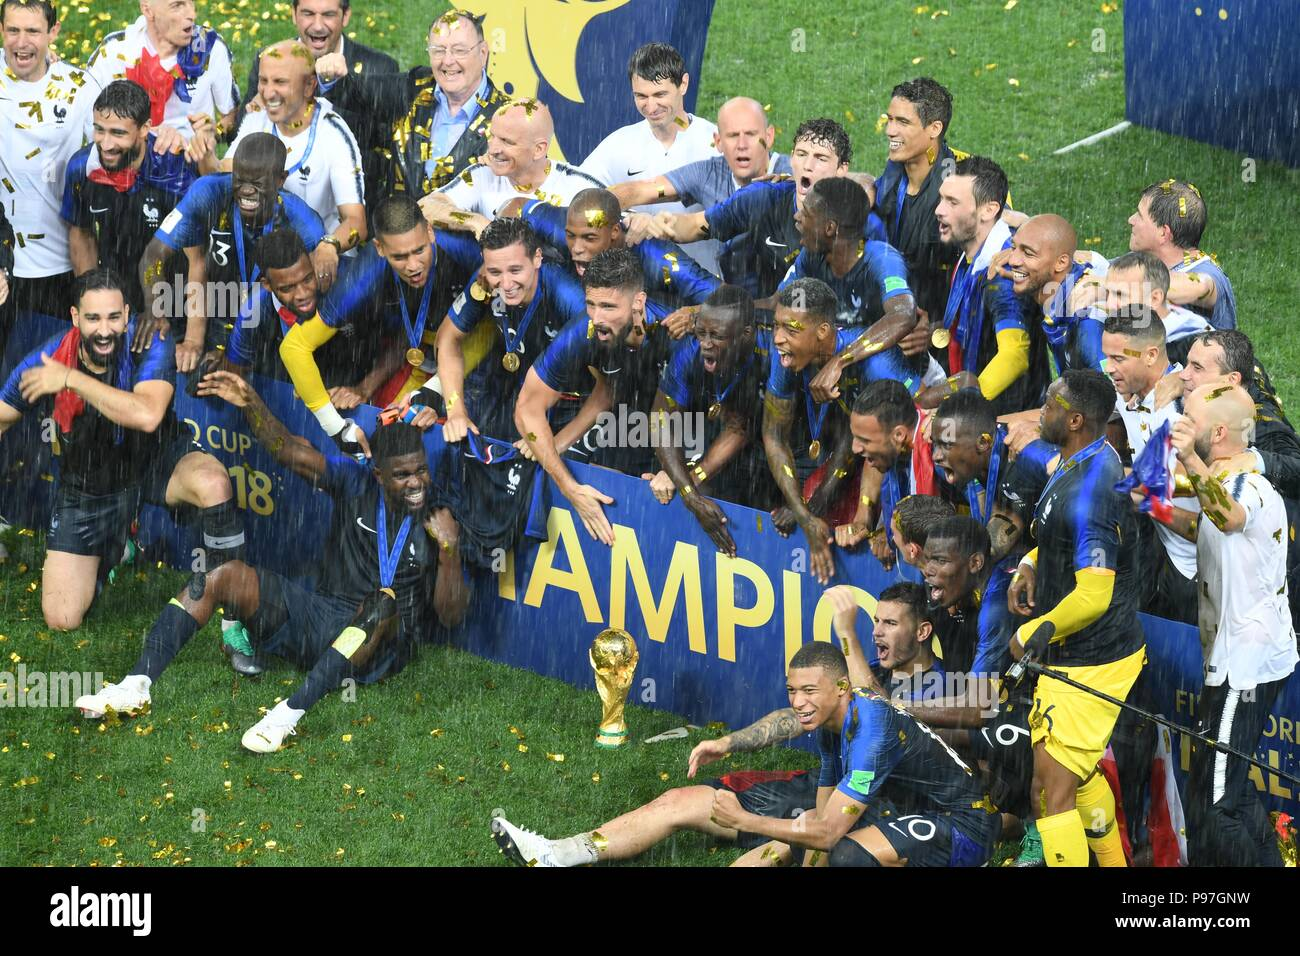 Moscow  Russia  July 15th  2018  France national football team     July 15th  2018  France national football team celebrate their victory of  world cup 2018 Final at Luzhniki stadium  Moscow  Shoja Lak Alamy Live News